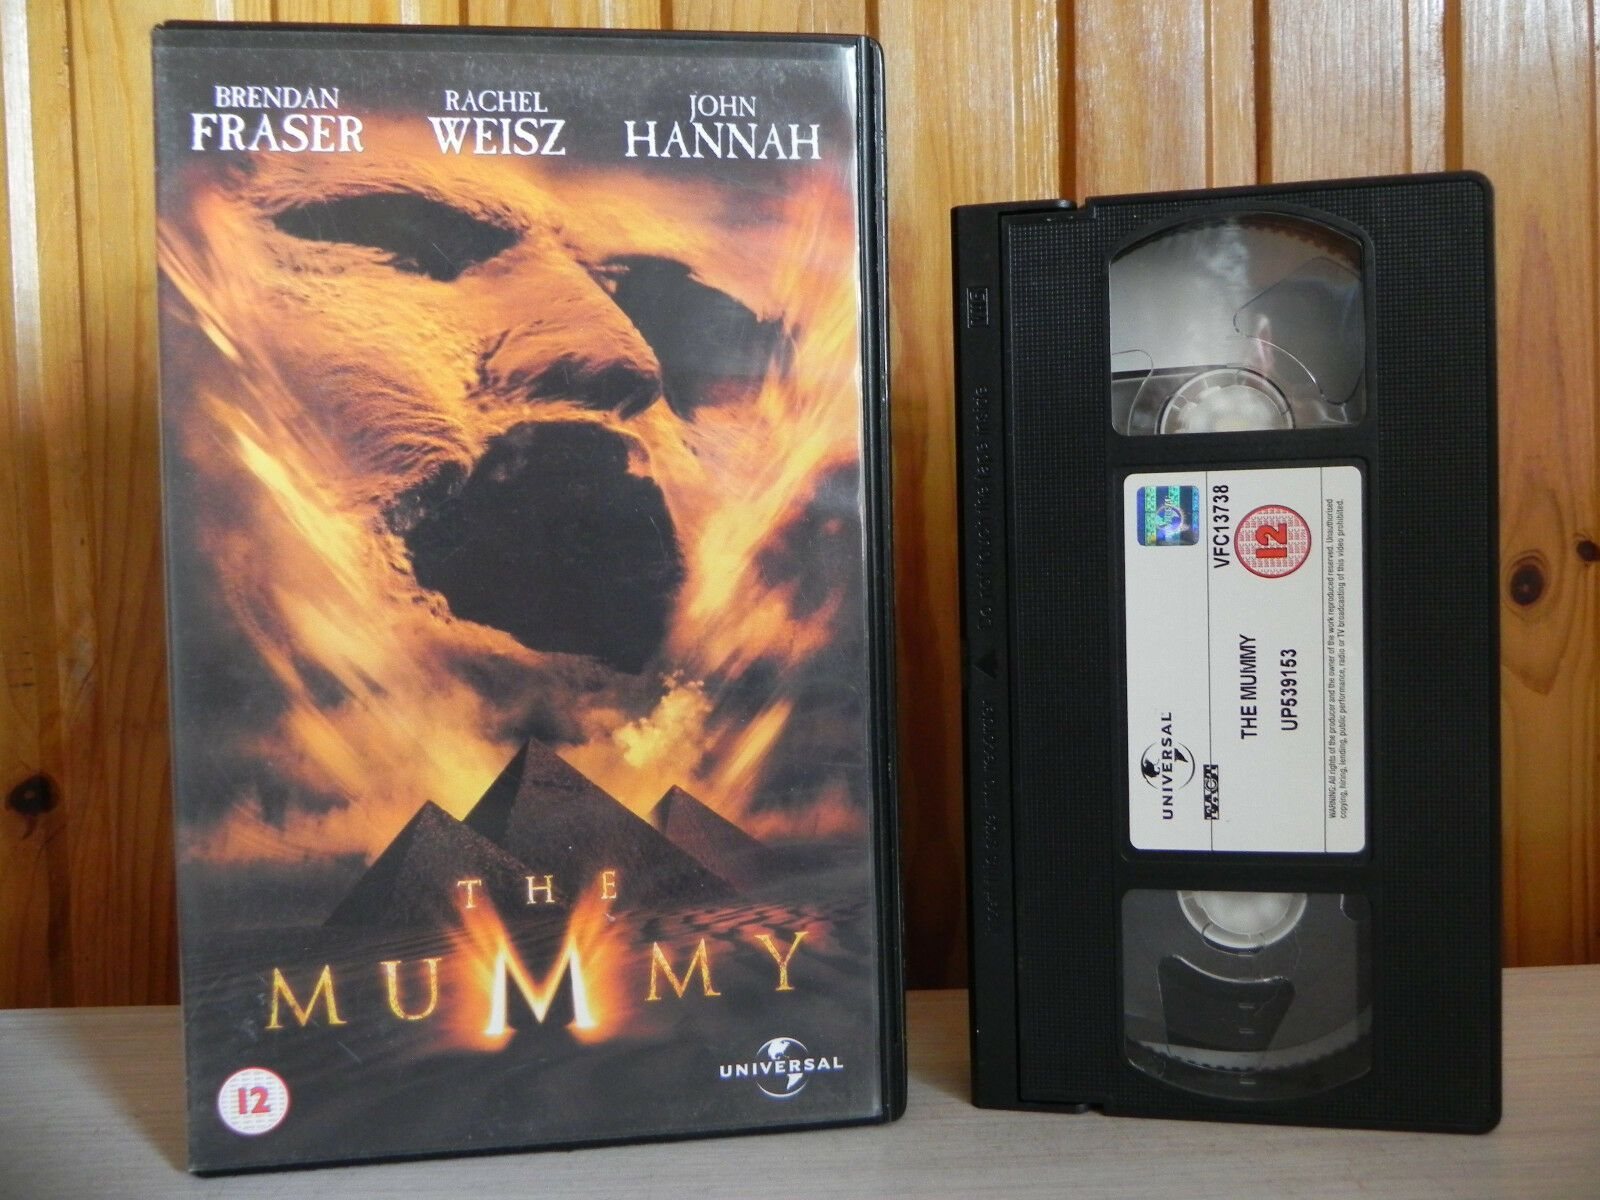 The Mummy (1999): Action Adventure [Large Box] Rental - Brendan Fraser - Pal VHS